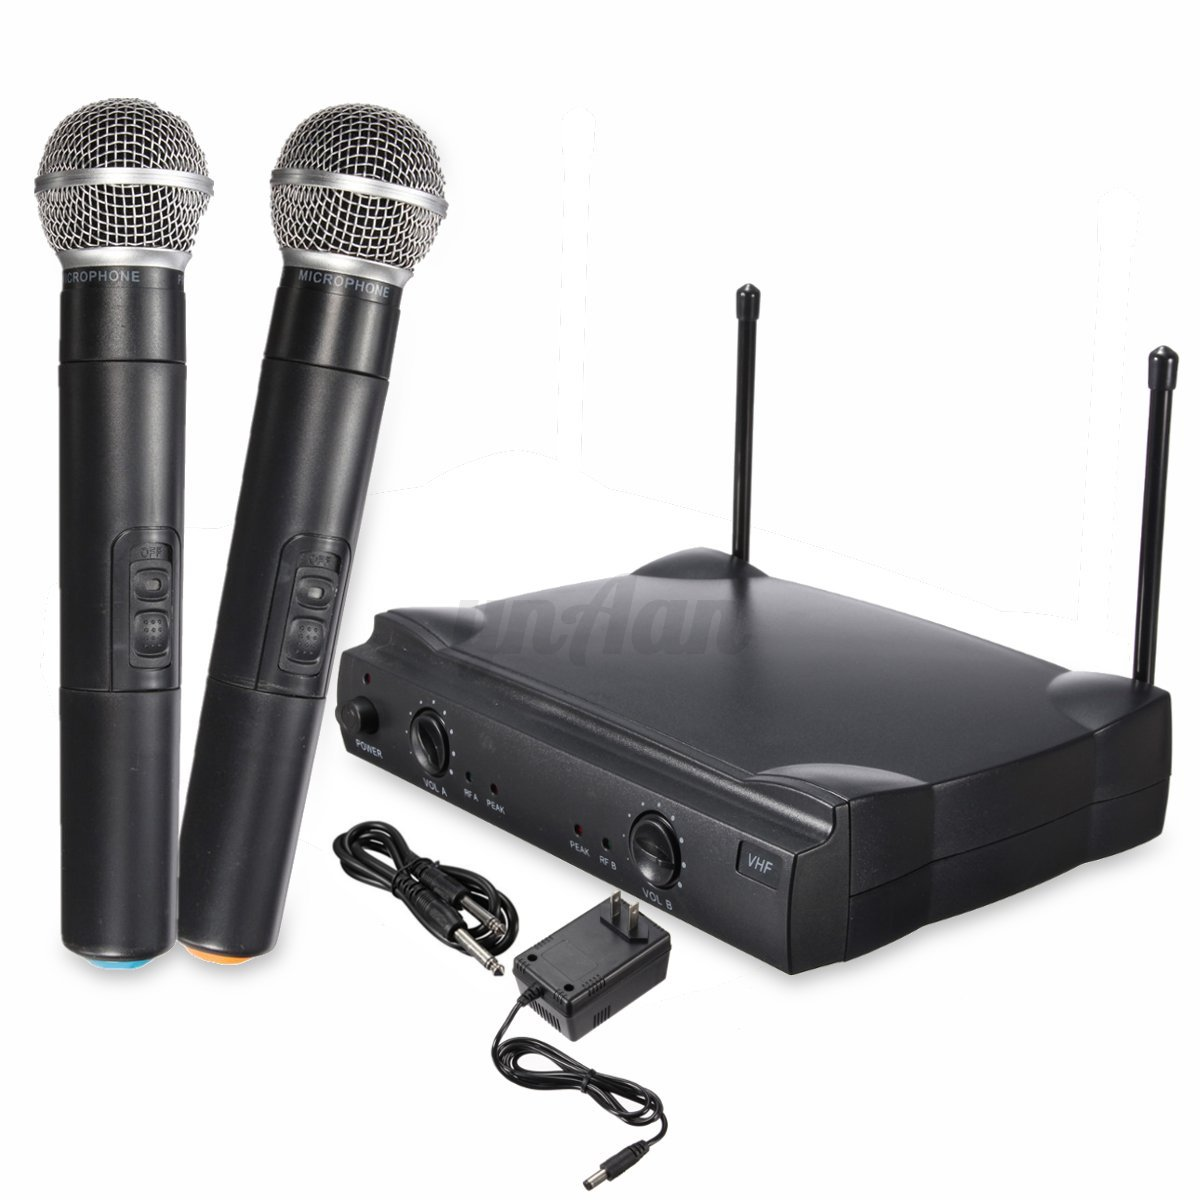 wireless dual channel vhf professional handheld microphone system 2 mic receiver ebay. Black Bedroom Furniture Sets. Home Design Ideas